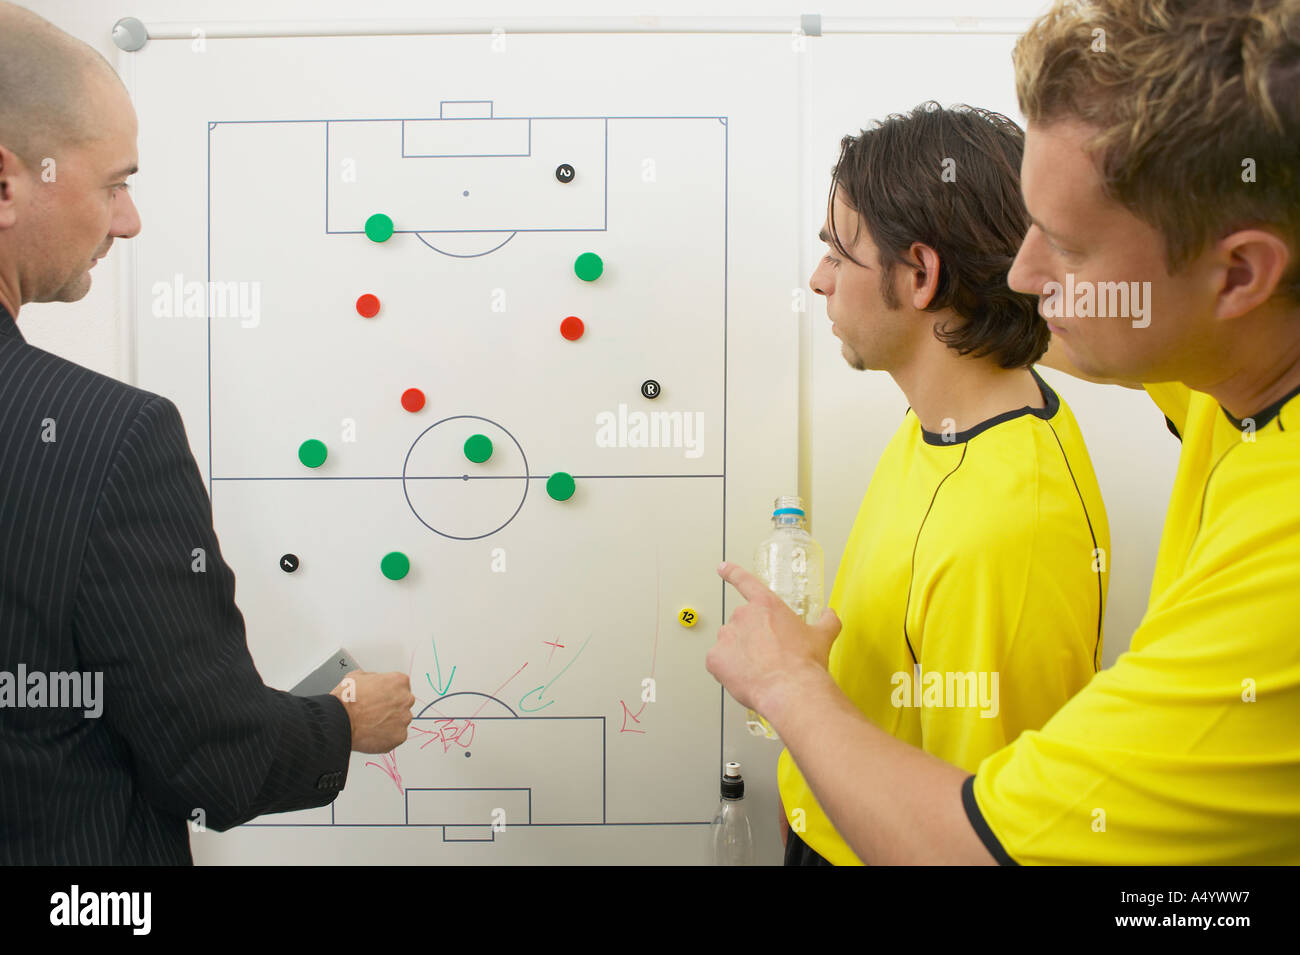 Coach and soccer players discuss strategy - Stock Image